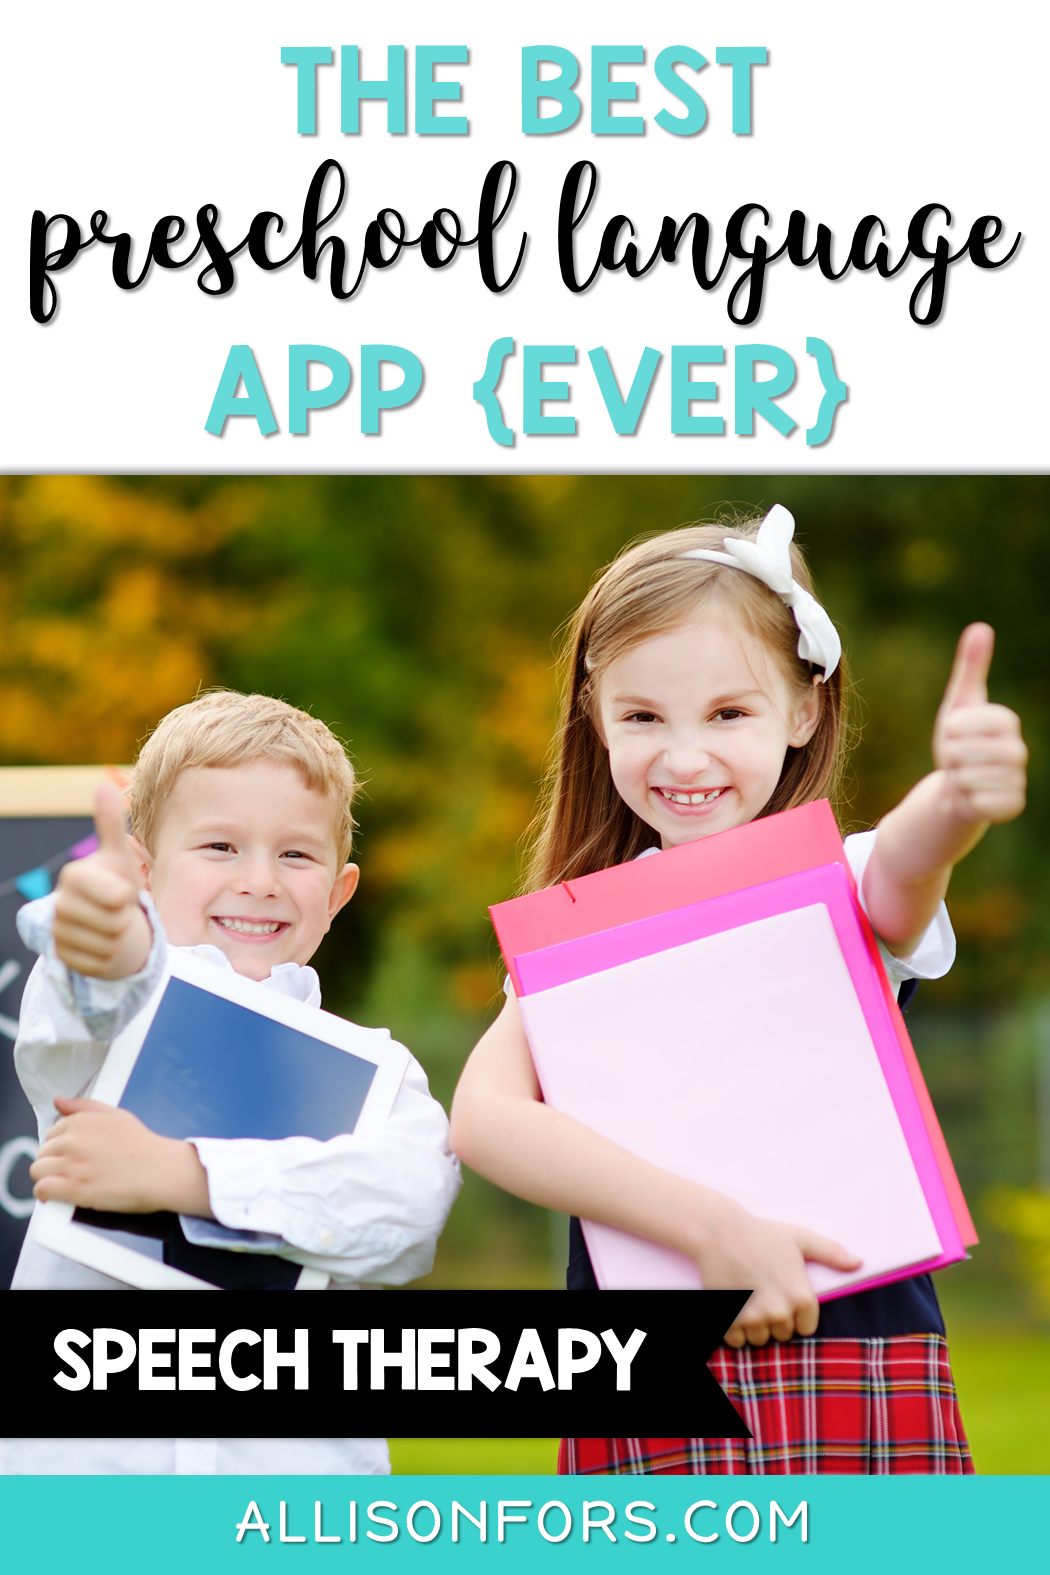 How to Use the My PlayHome app to Develop Language Skills